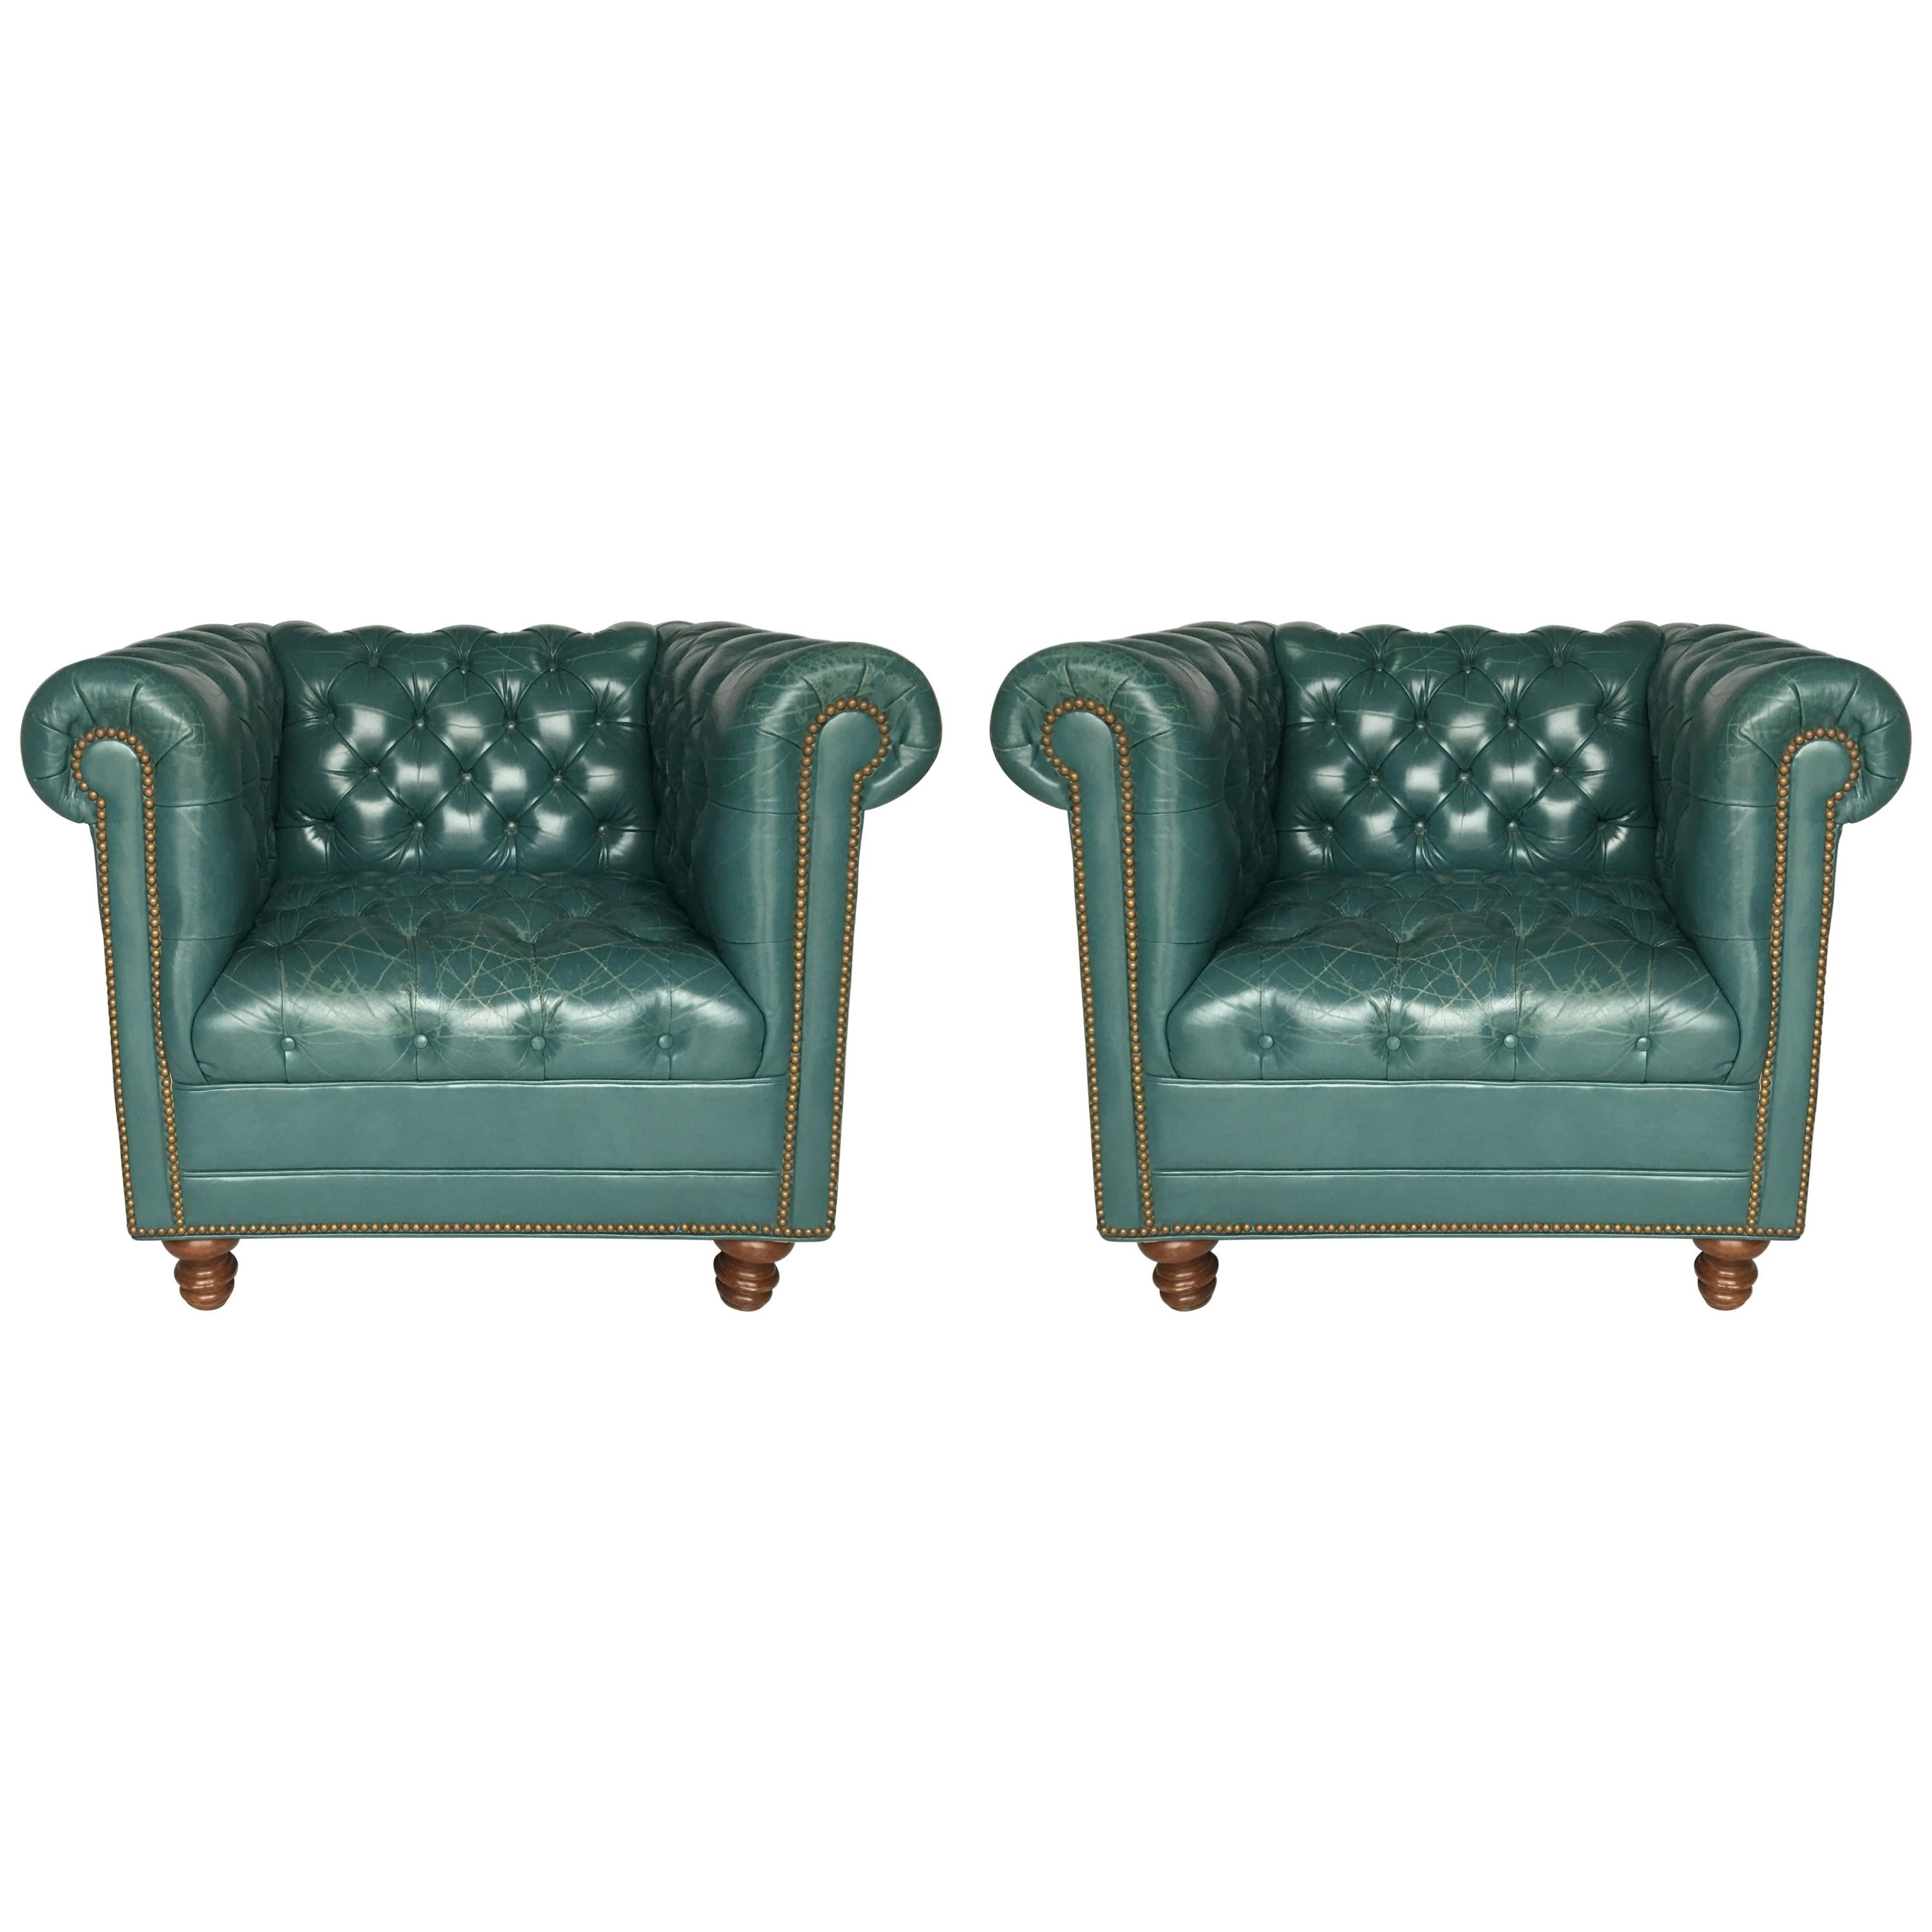 Vintage Teal Tufted Chesterfield Lounge Chairs